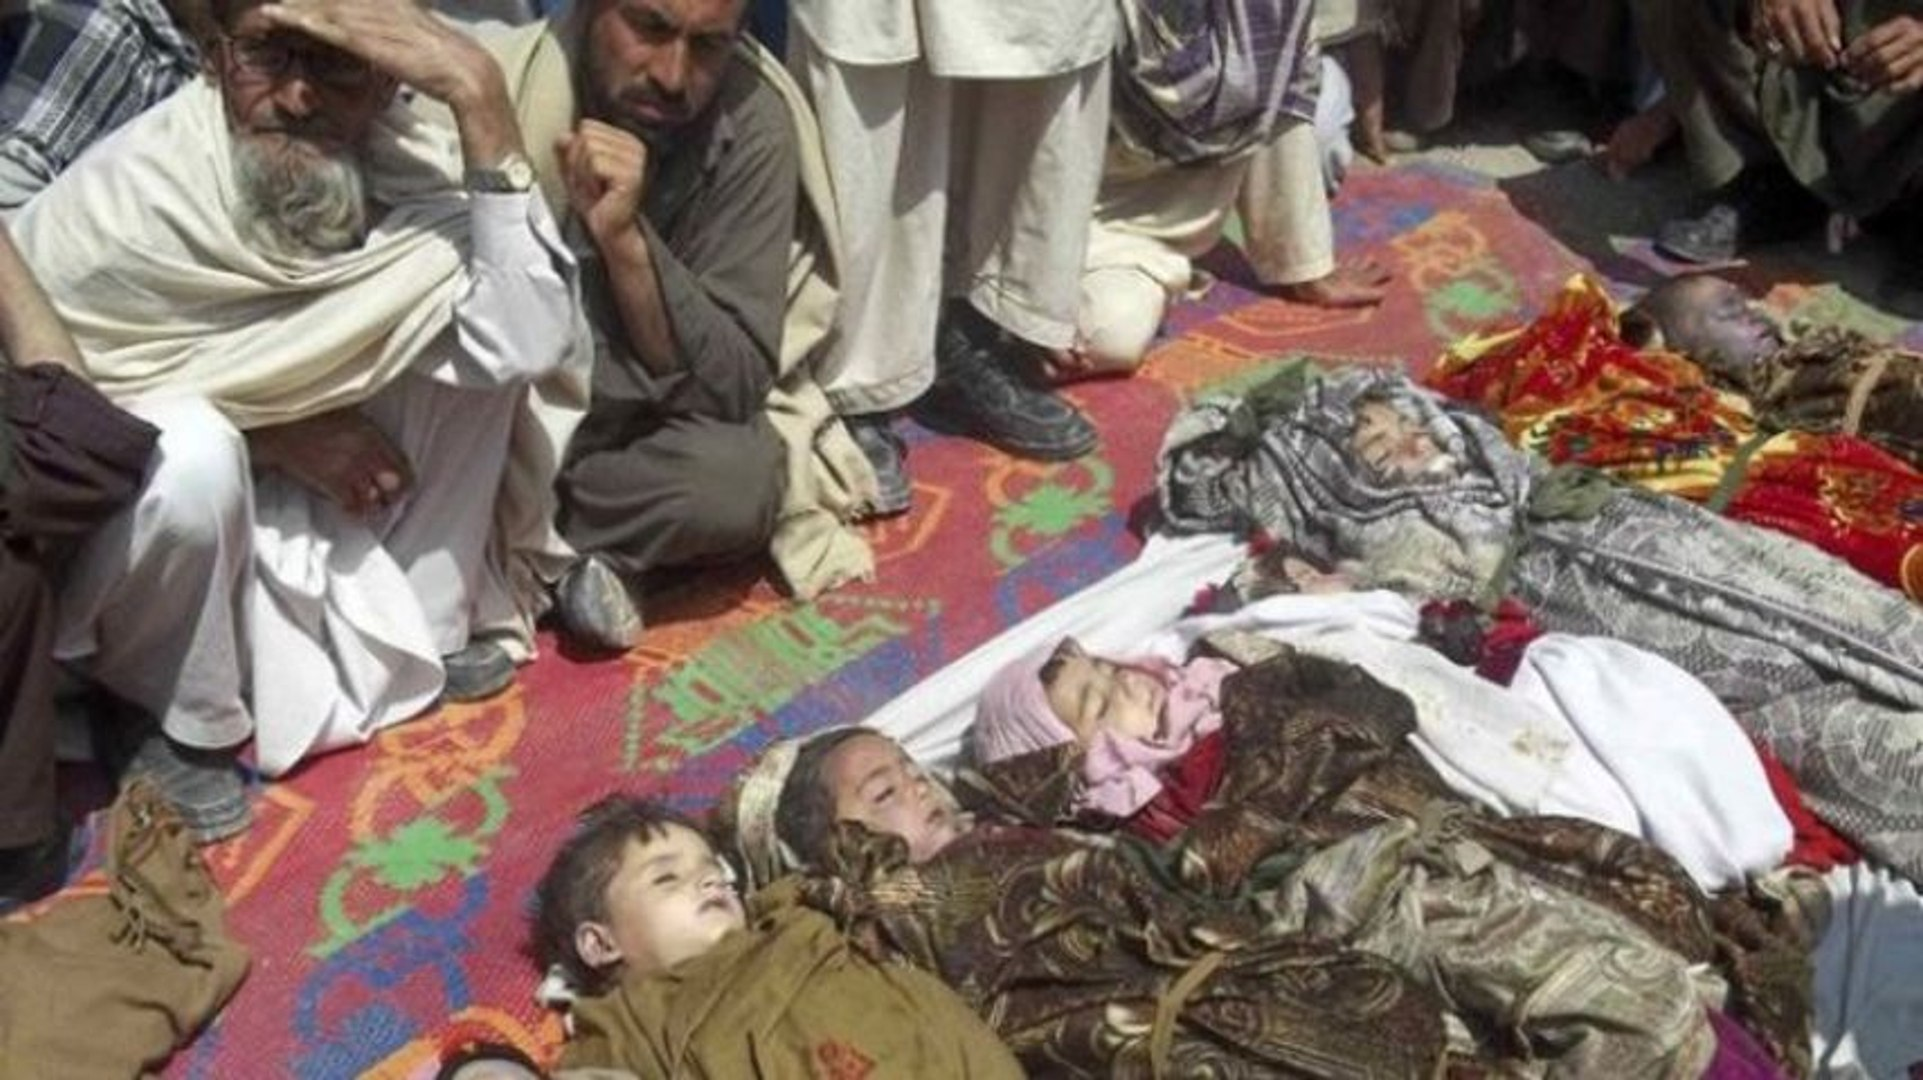 Afghan team: US air strikes killed 14 civilians in Parwan